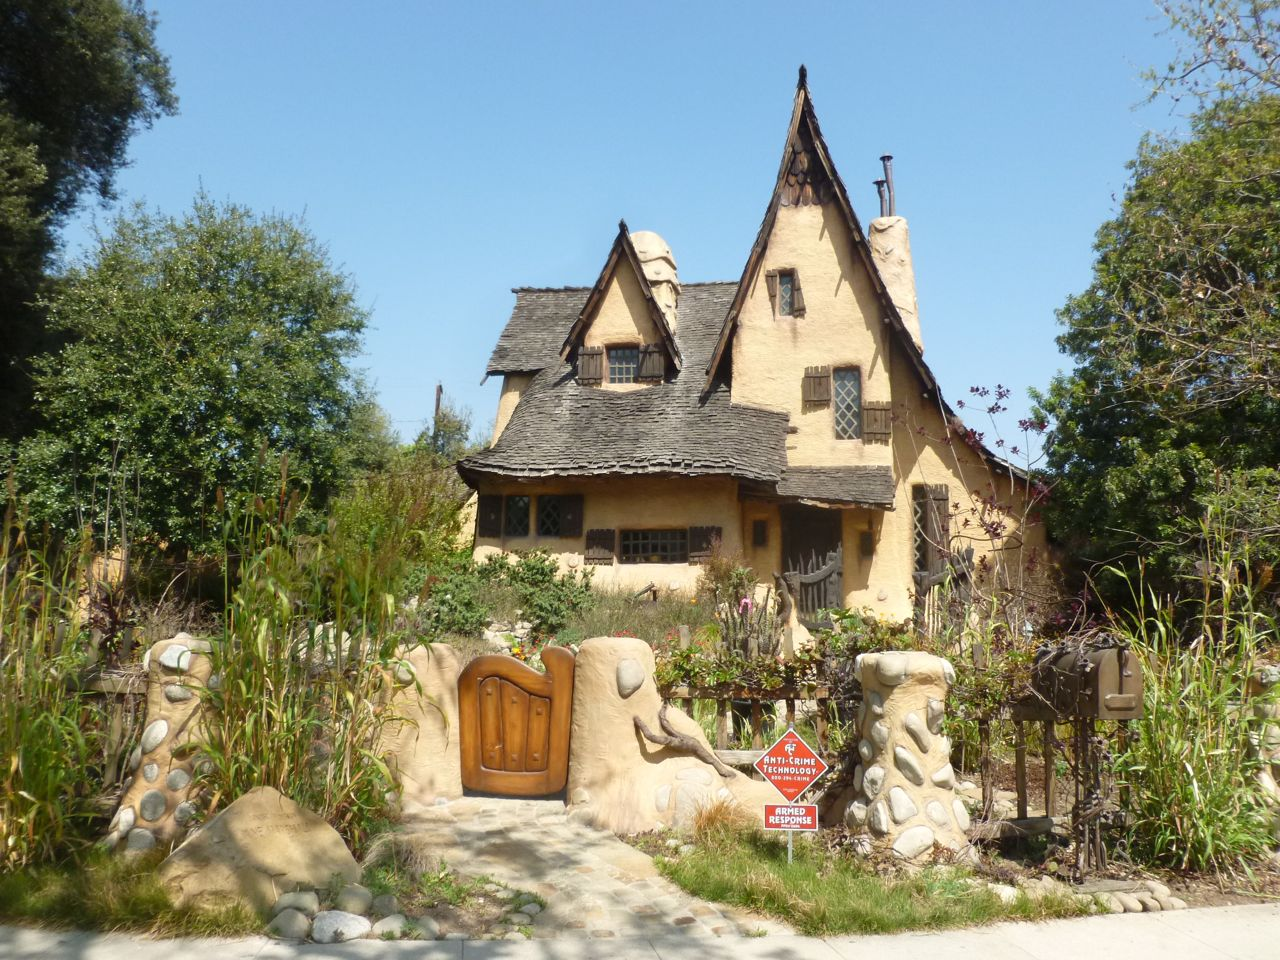 spadena-house-witchs-house-beverly-hills-5